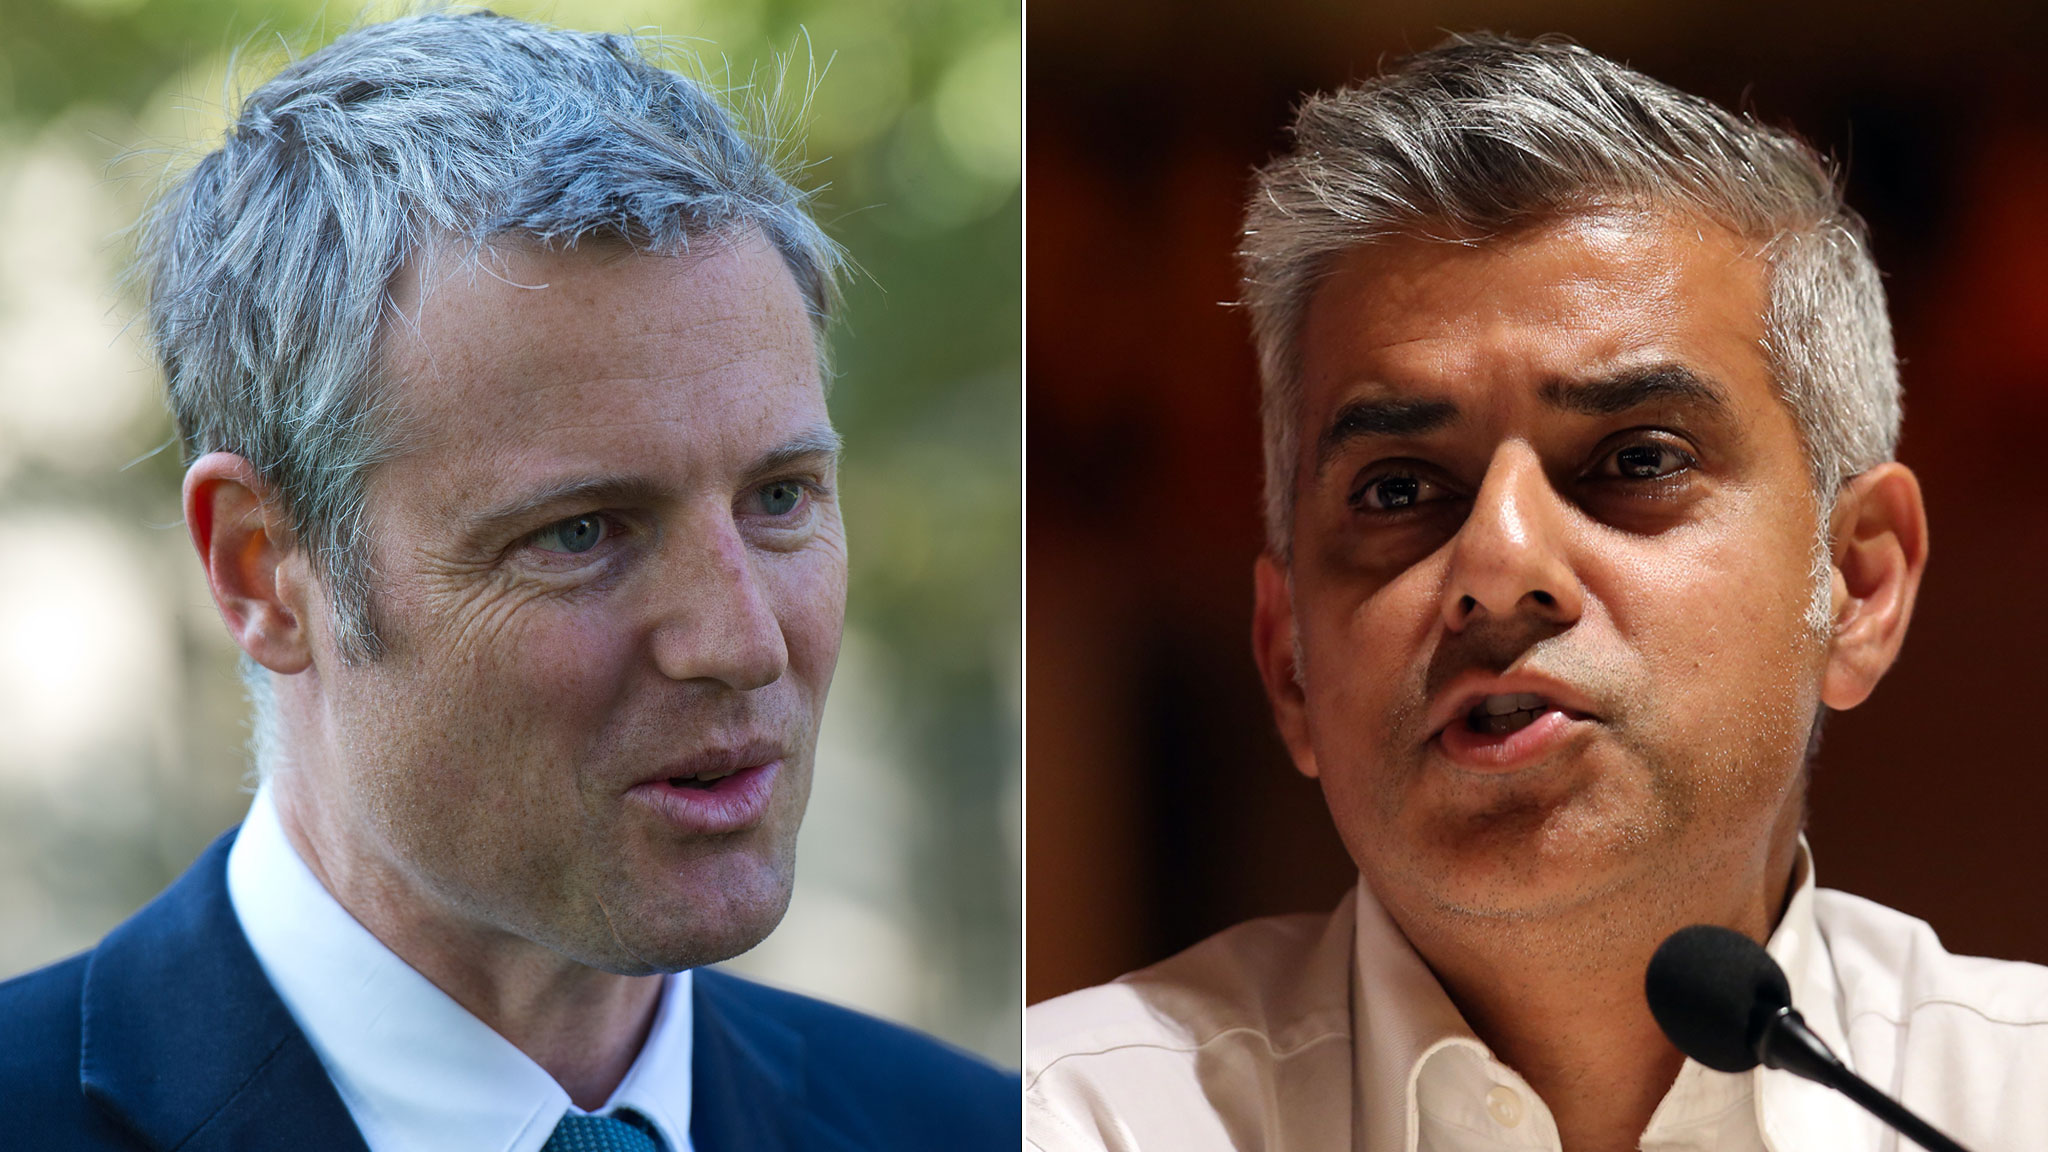 Contrast between London mayoral candidates could not be greater